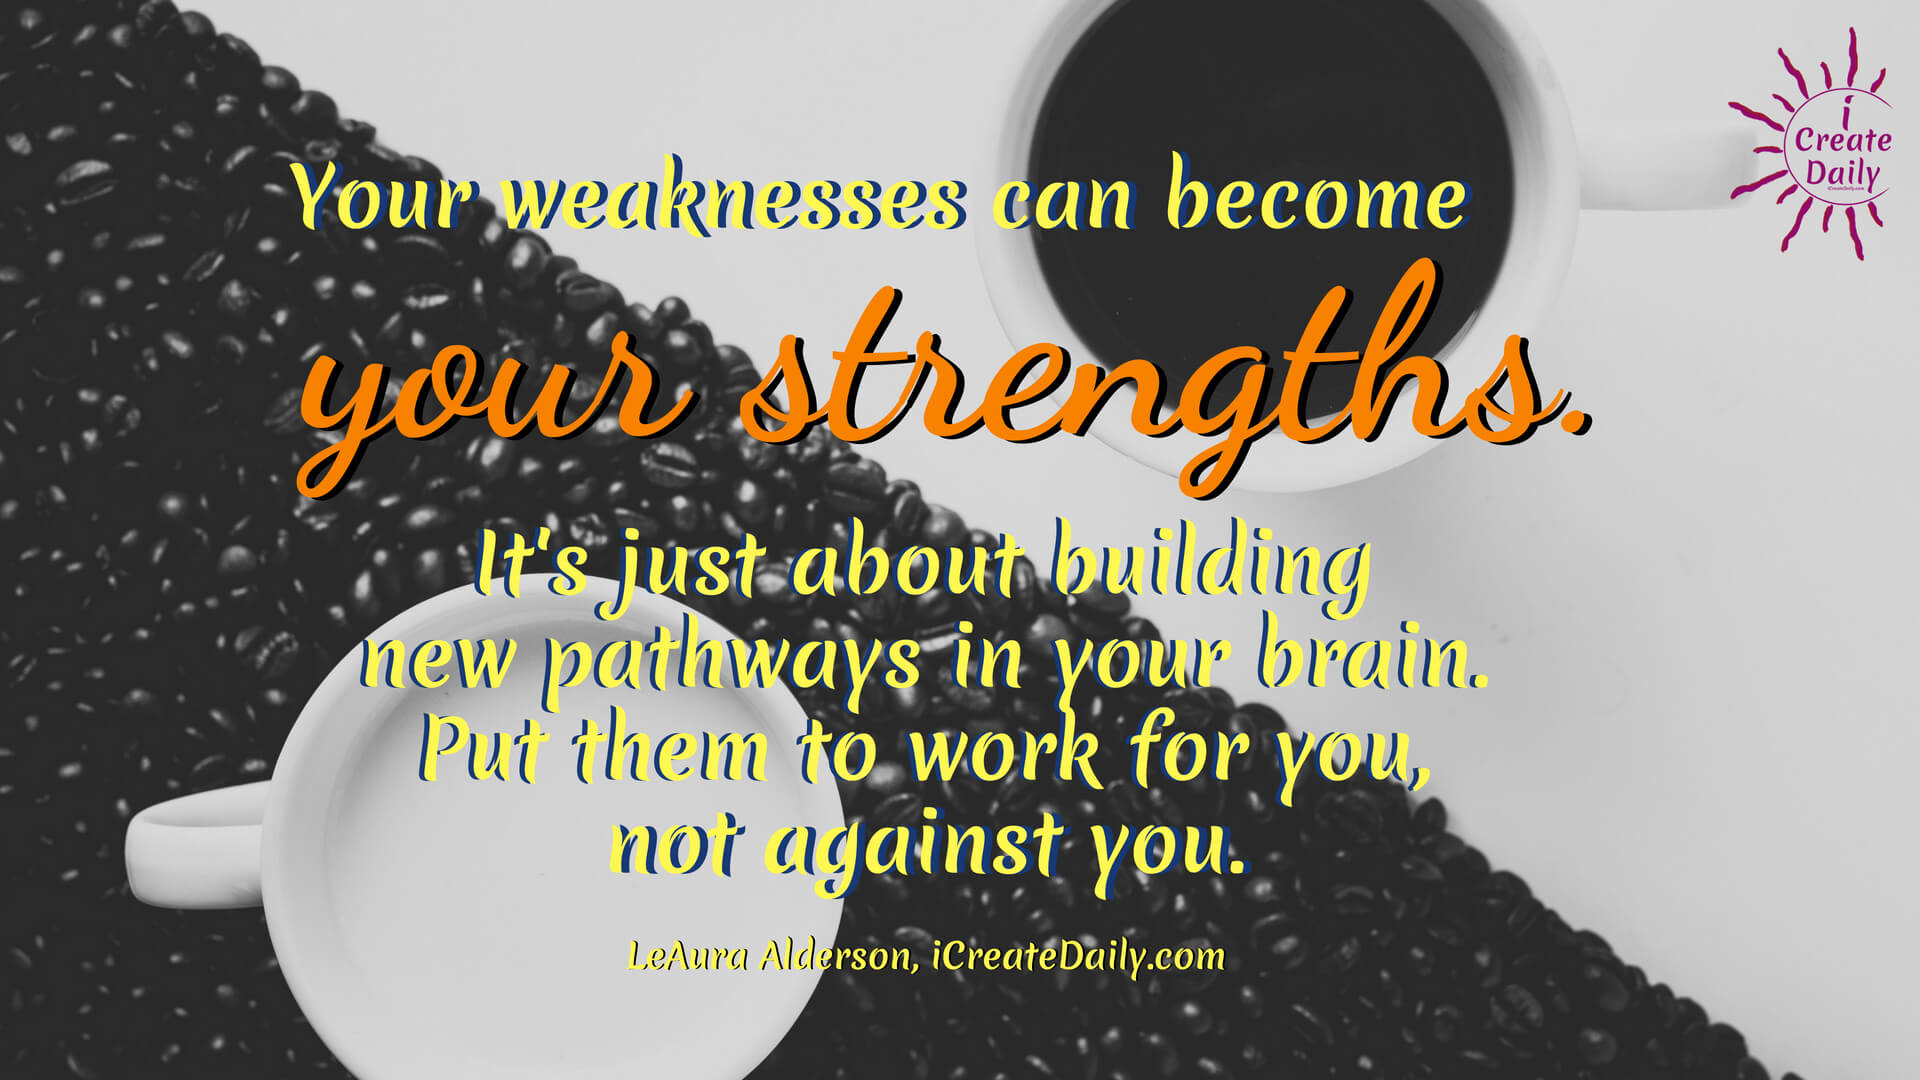 Struggles are just brambles in the path; hack them away and forge ahead. #YourStrengths #iCreateDaily #PersonalDevelopment #FocusOnYourStrengths